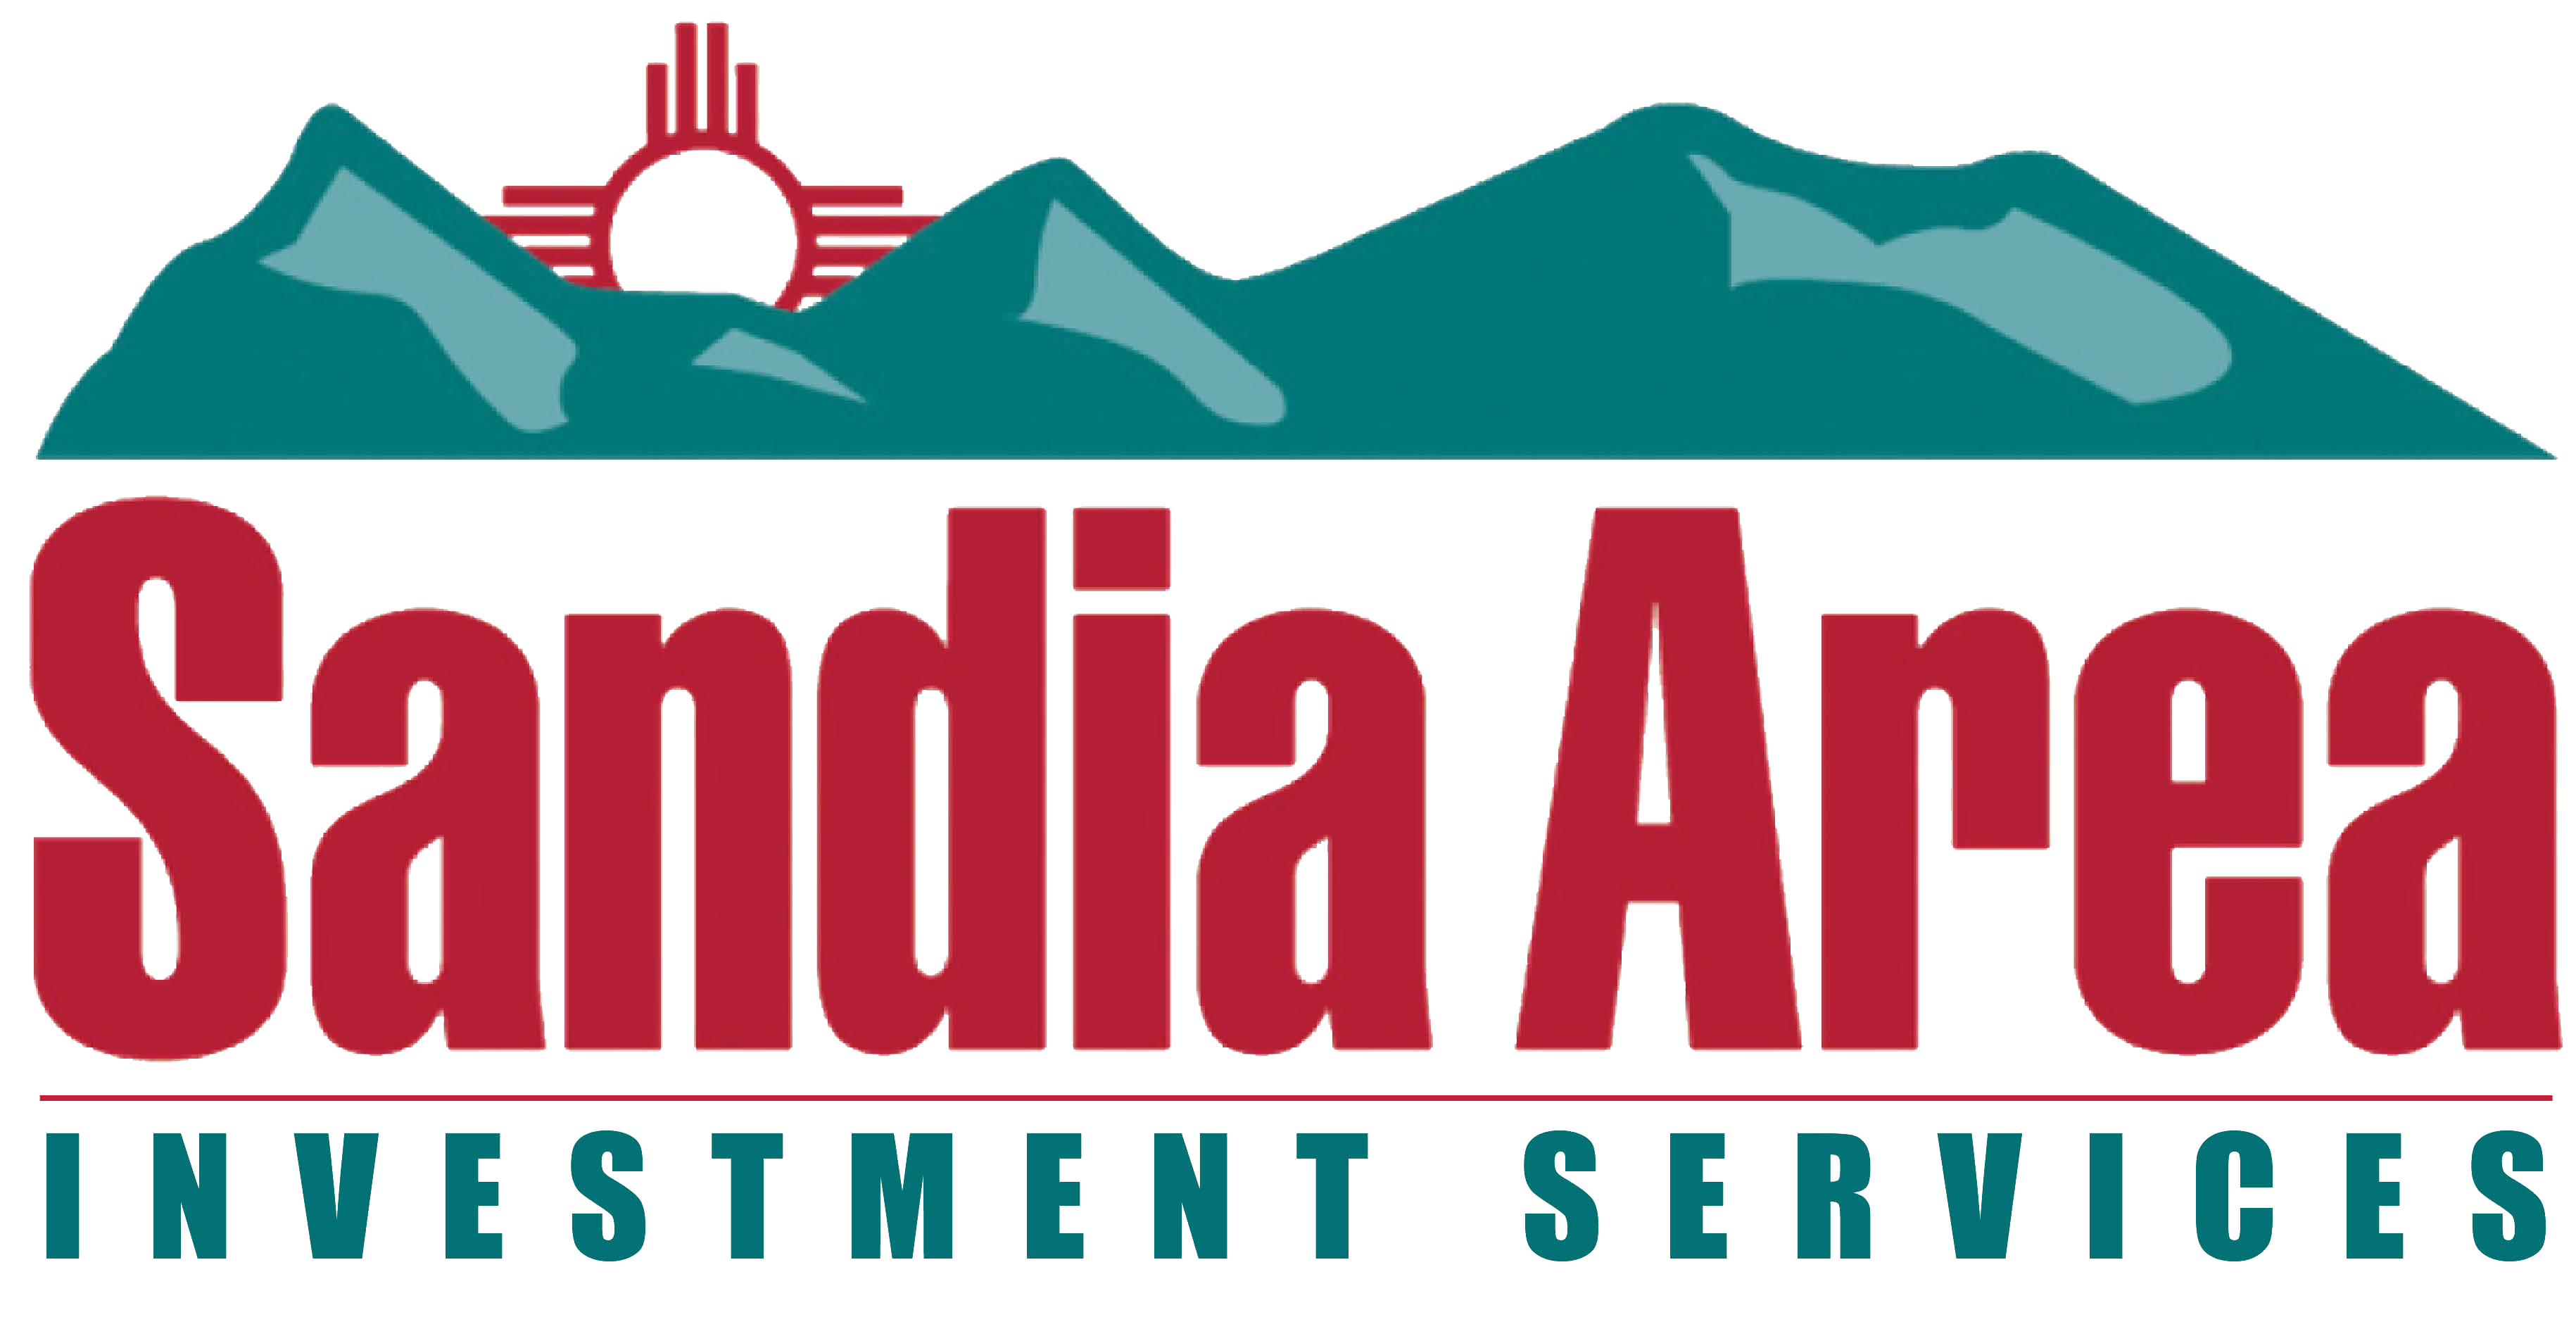 Sandia Are Investment Services